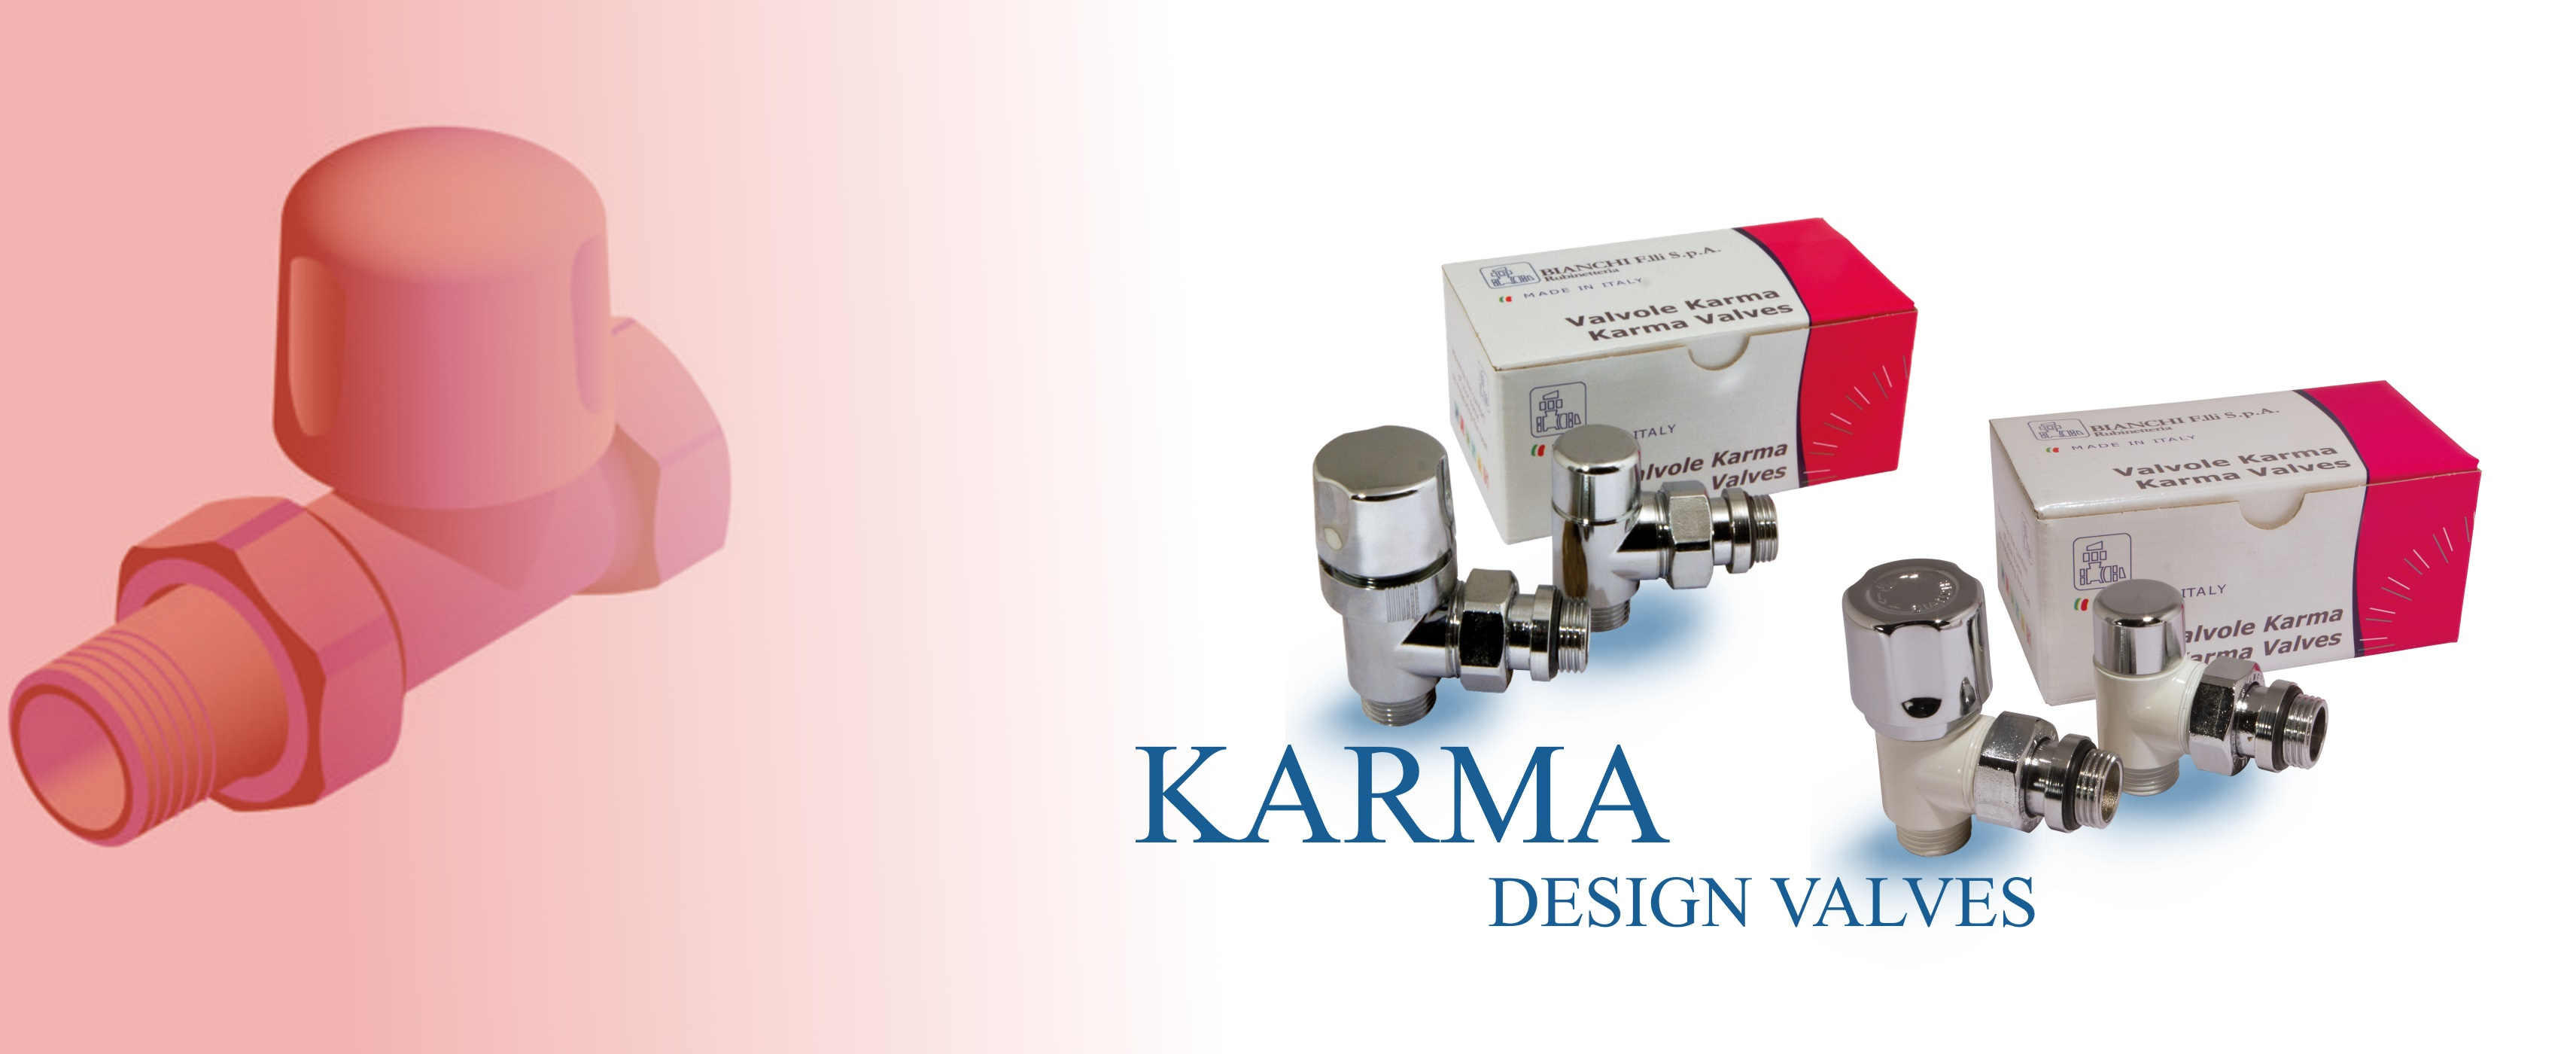 KARMA design valves